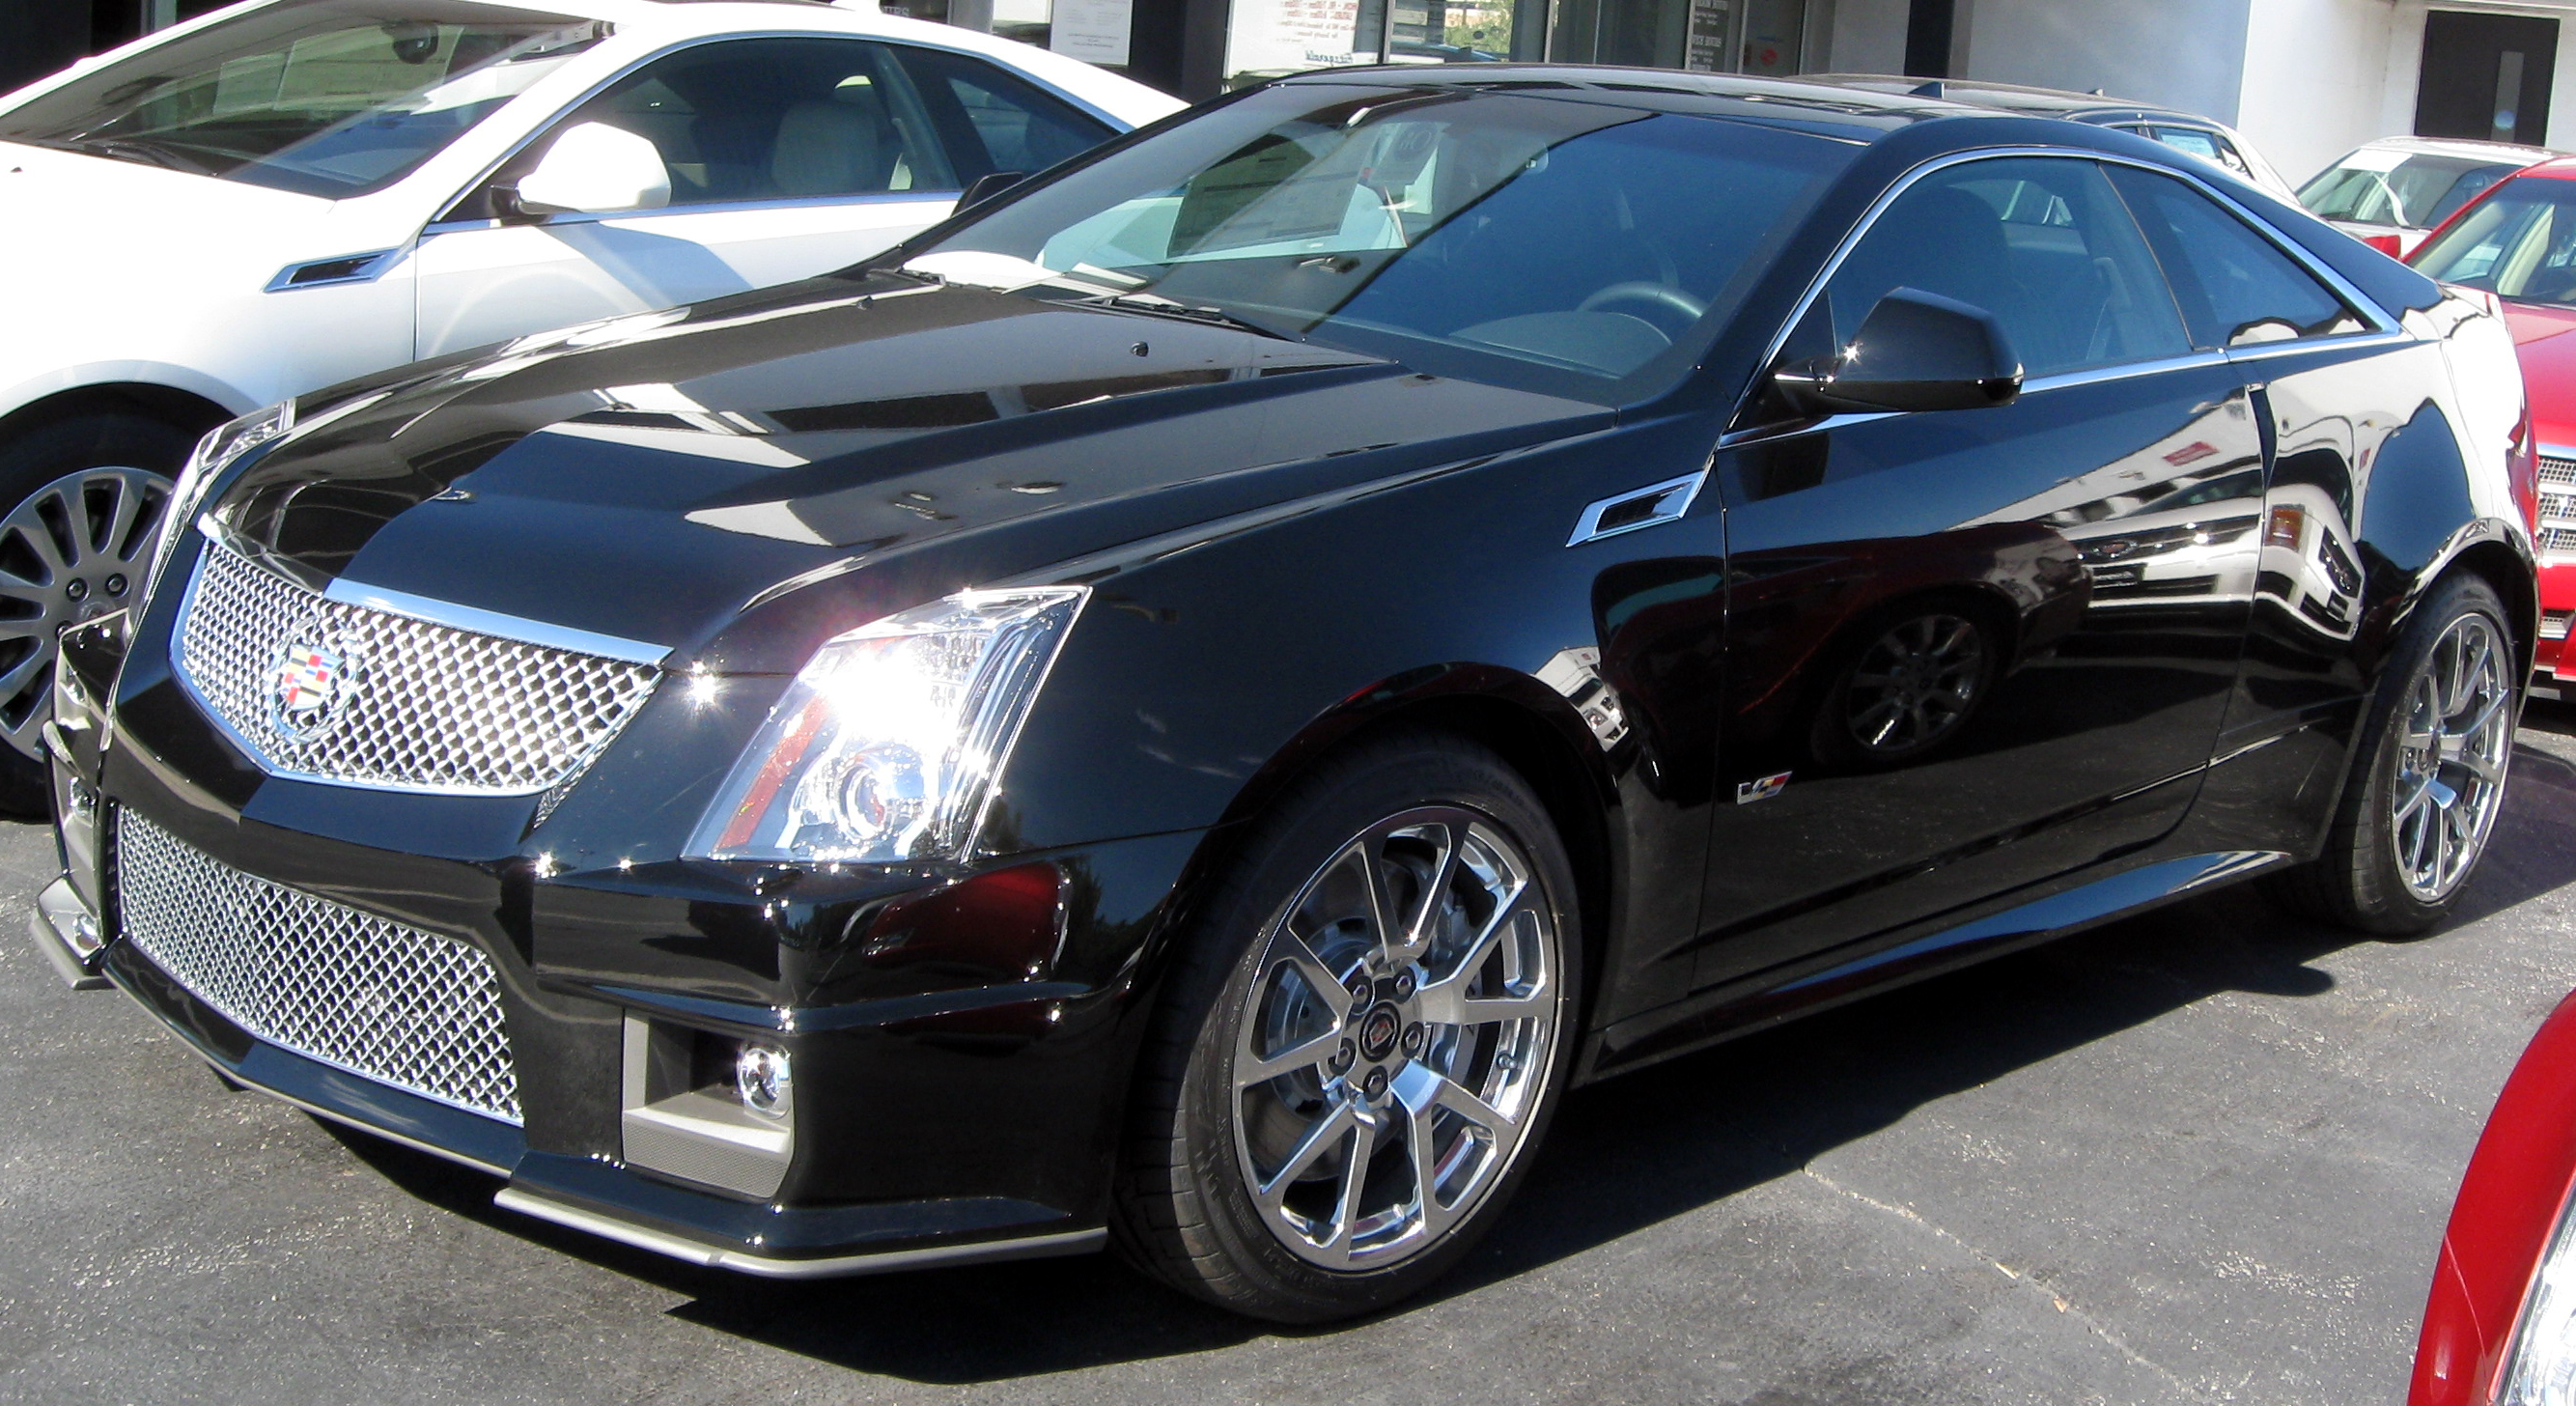 Description 2011 Cadillac CTS-V coupe front -- 10-22-2010.jpg